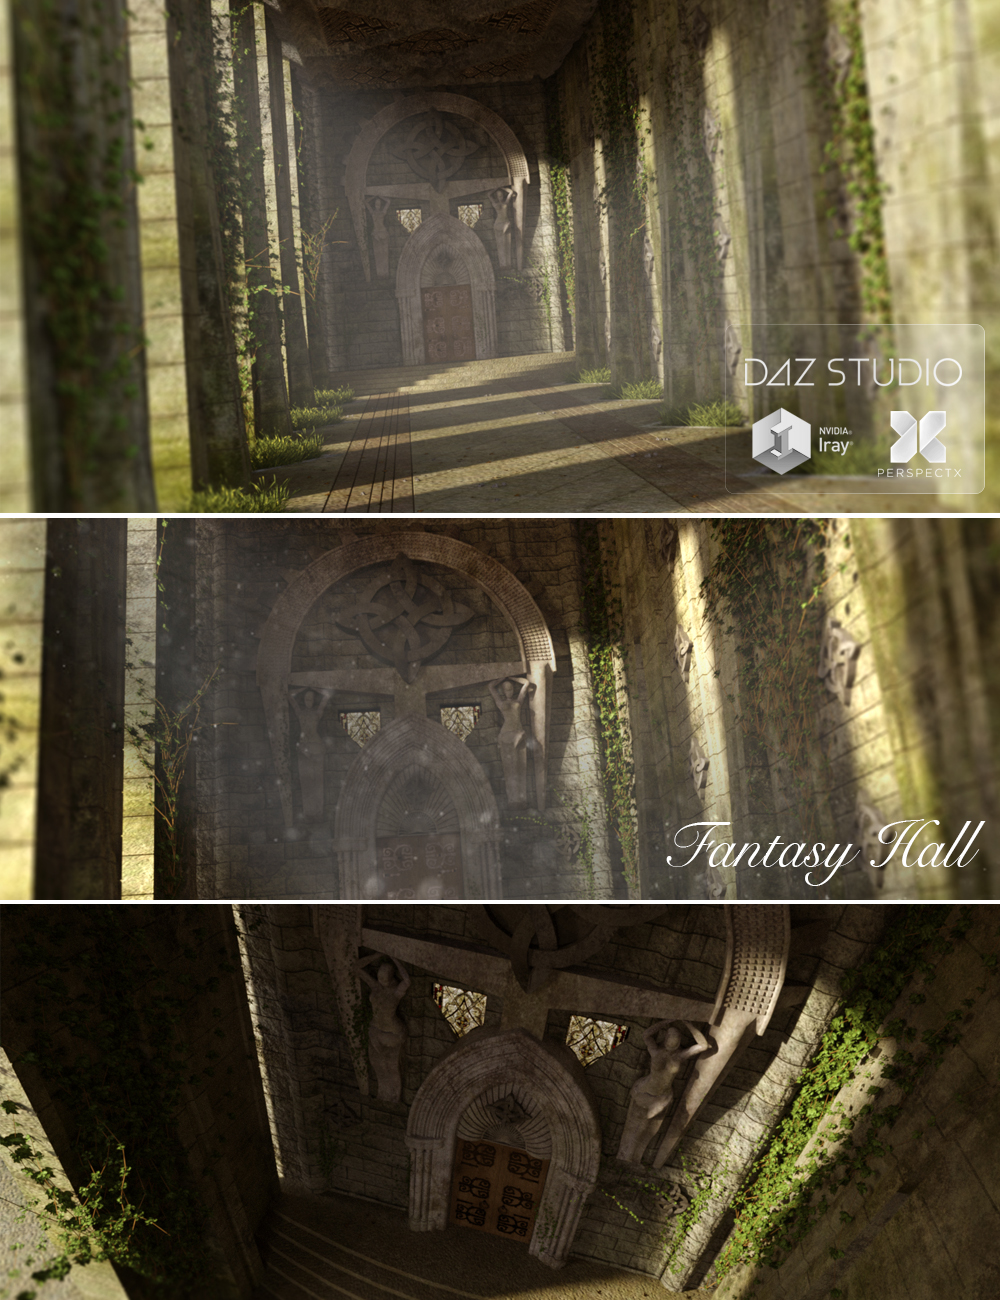 Ancient Fantasy Hall by: PerspectX, 3D Models by Daz 3D